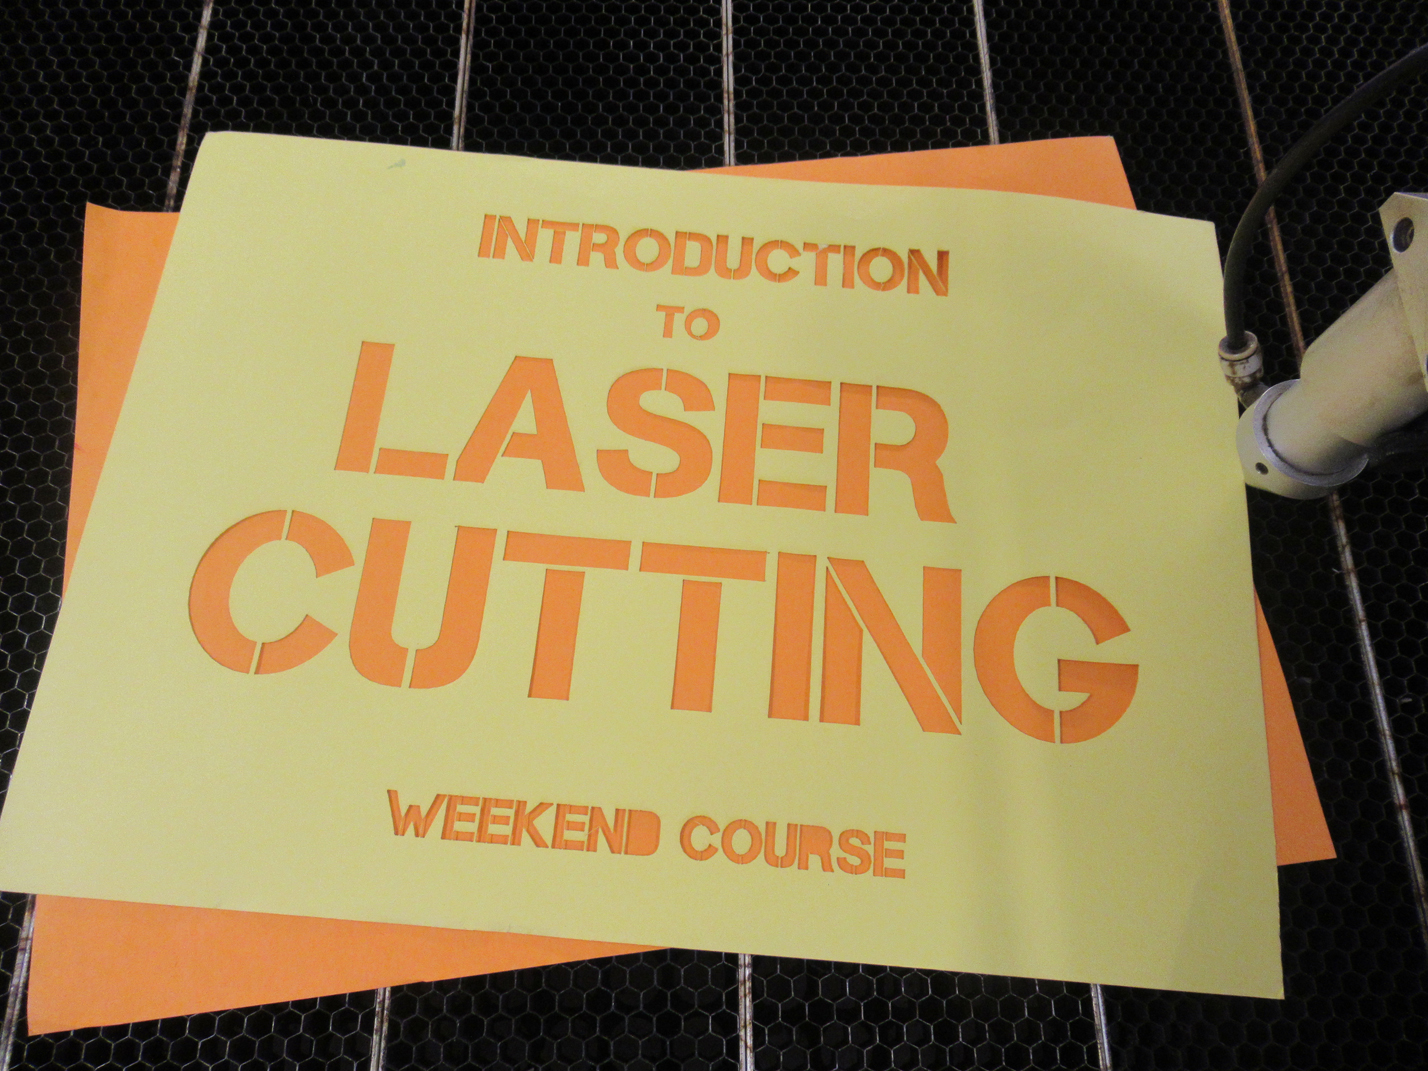 Introduction to Laser Cutting 27th & 28th October